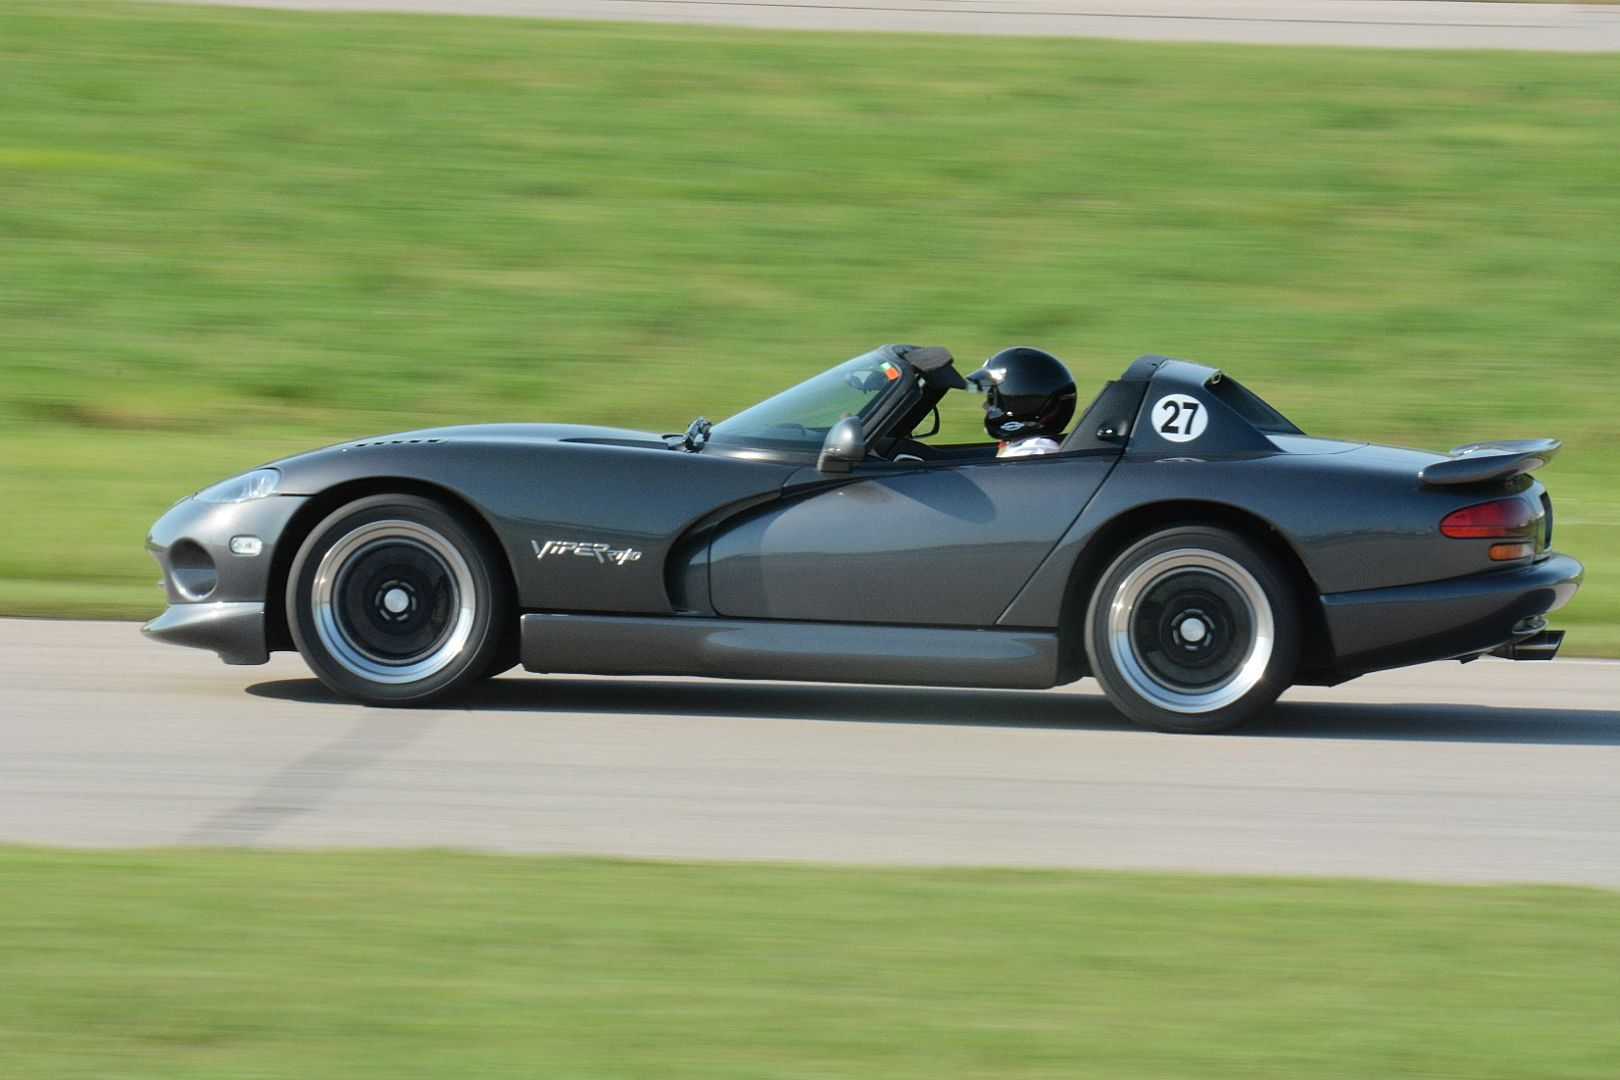 2002 RT10 tearing up the track at Motorsport Park in